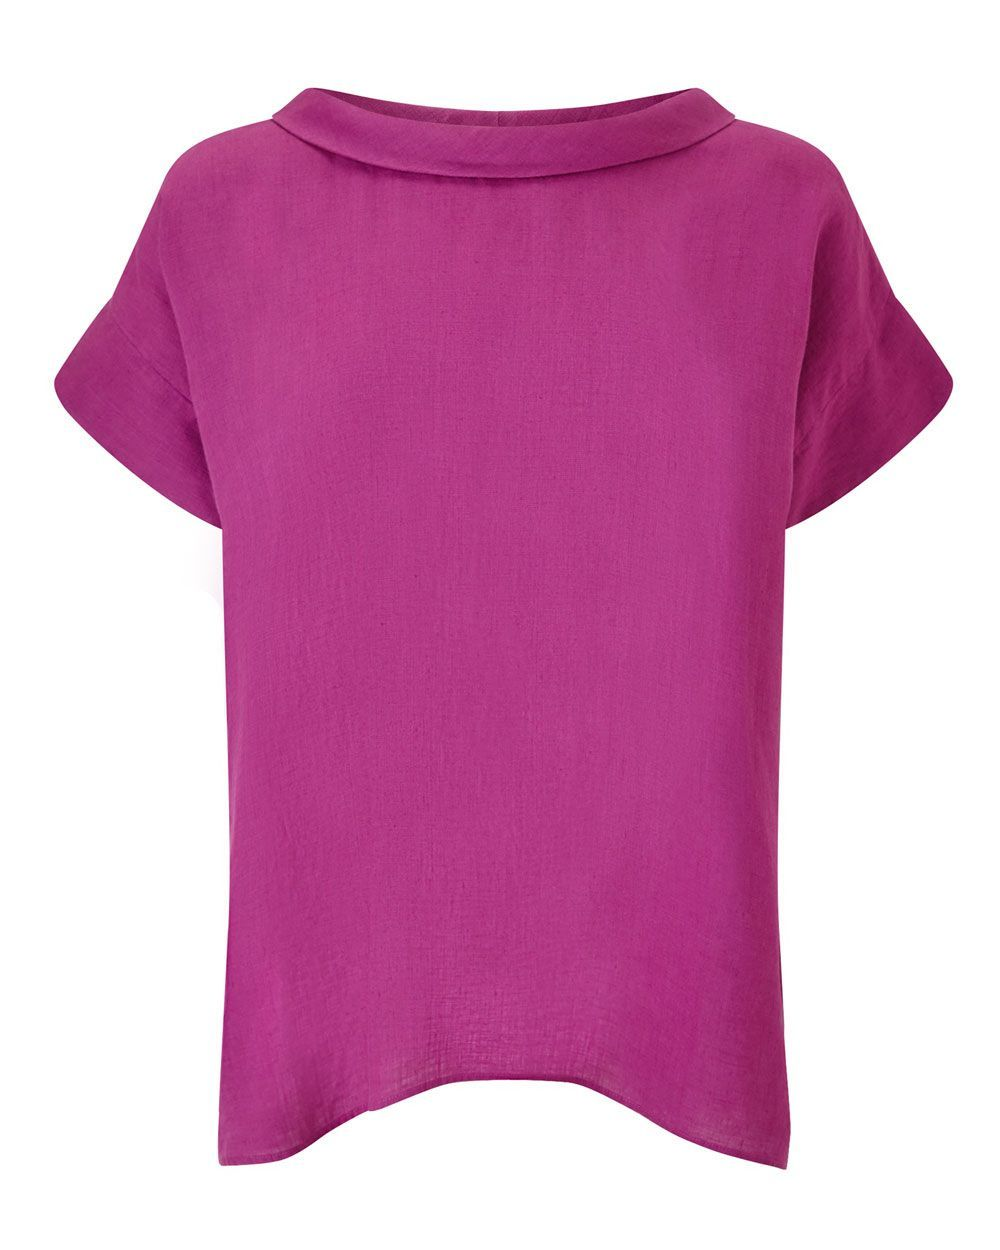 Bardot Neck Top, Magenta - sleeve style: capped; pattern: plain; neckline: high neck; style: t-shirt; predominant colour: magenta; occasions: casual; length: standard; fibres: linen - 100%; fit: straight cut; sleeve length: short sleeve; texture group: linen; pattern type: fabric; season: s/s 2016; wardrobe: highlight